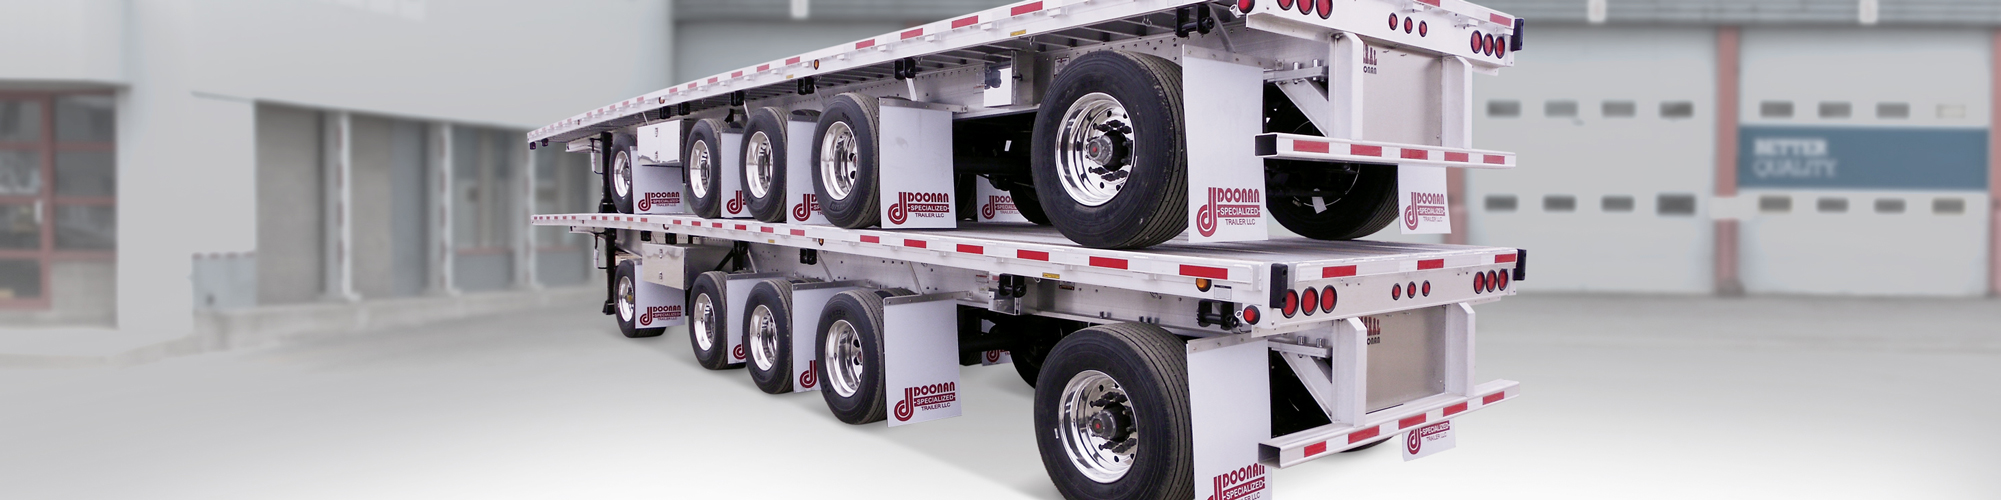 Doonan and Chaparral trailers